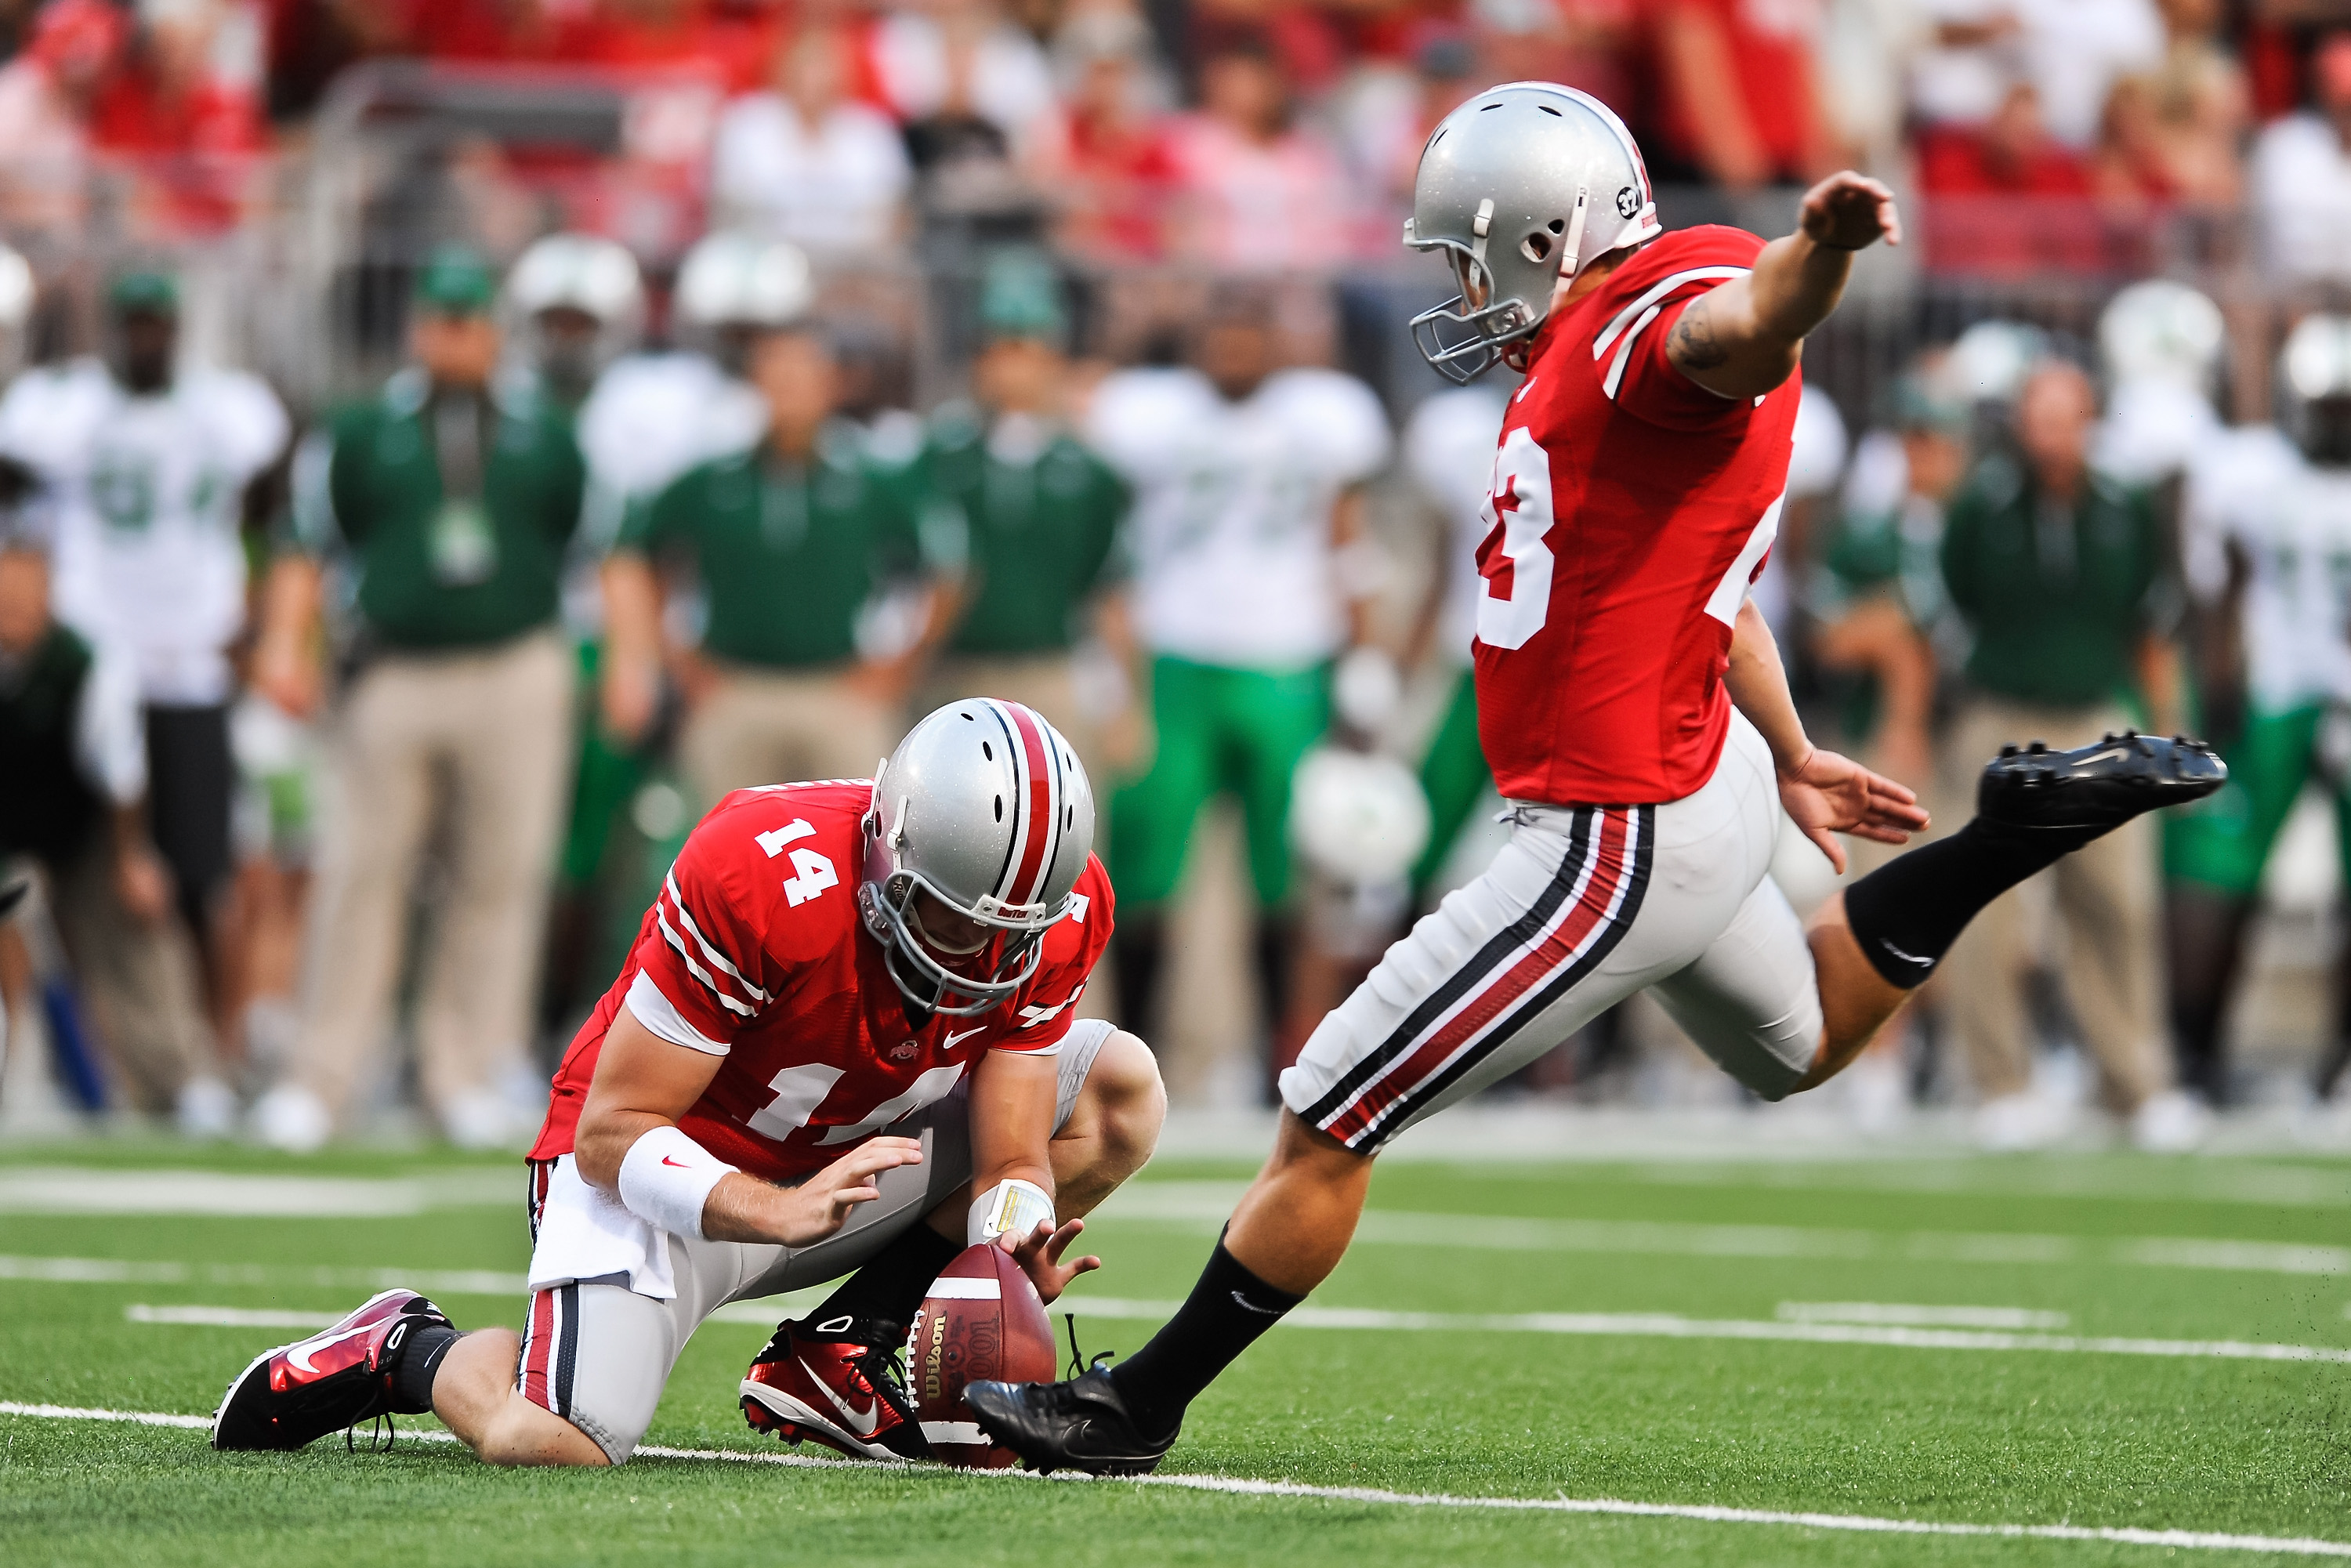 Ohio State Buckeyes Midseason Report Card   Bleacher Report   Latest News, Videos and Highlights